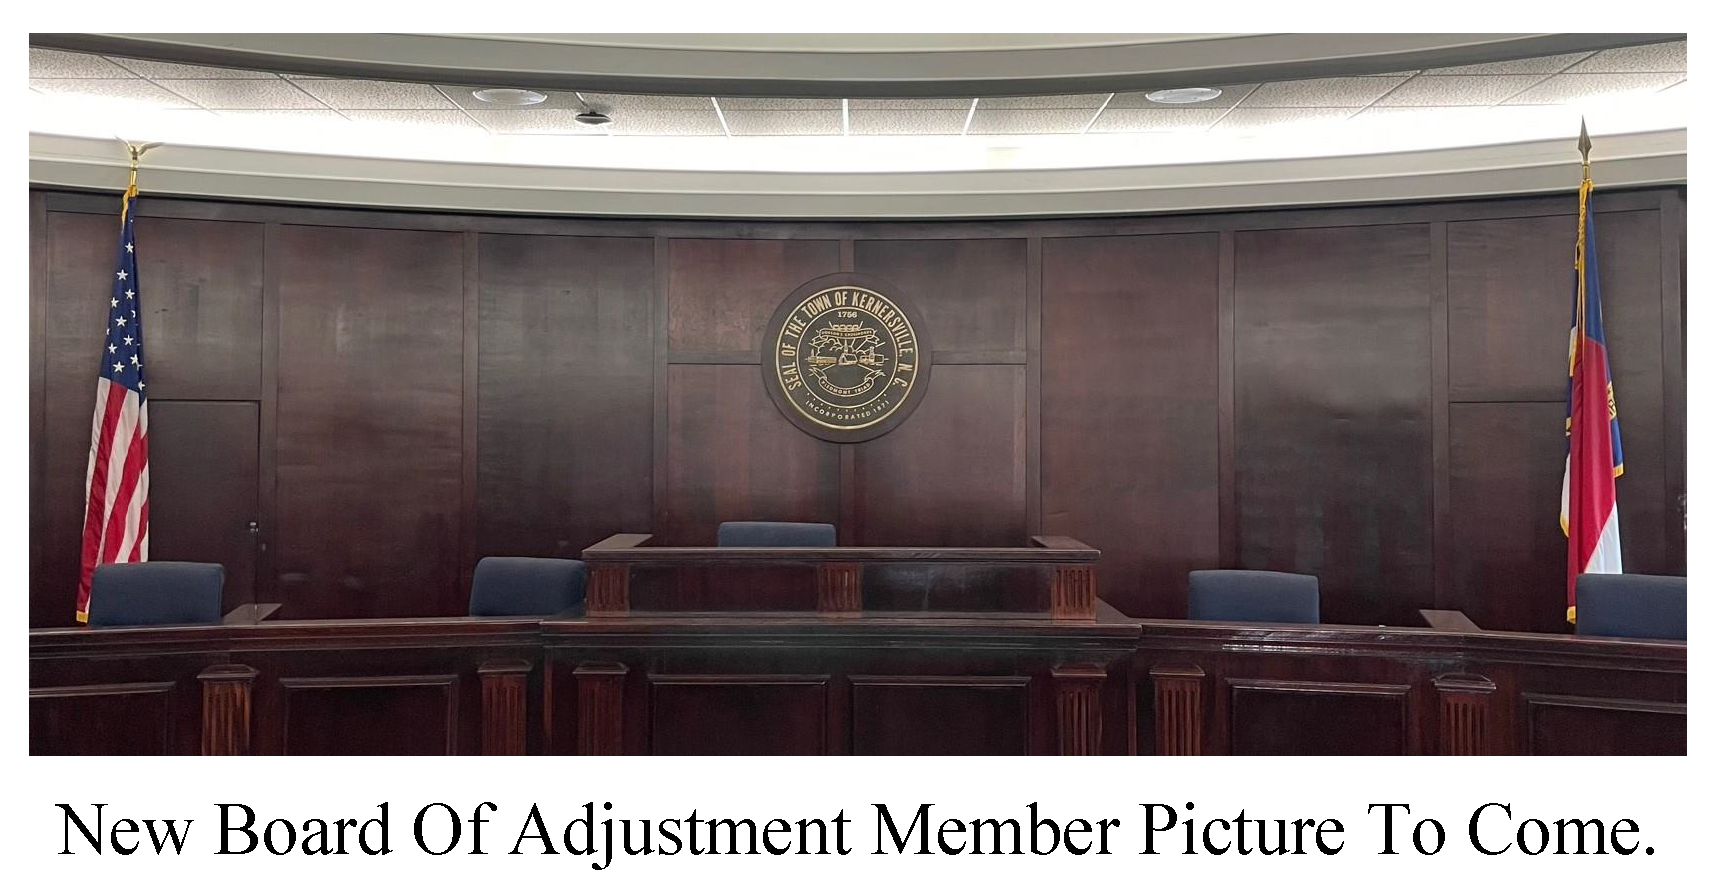 Picture of Board of Adjustment